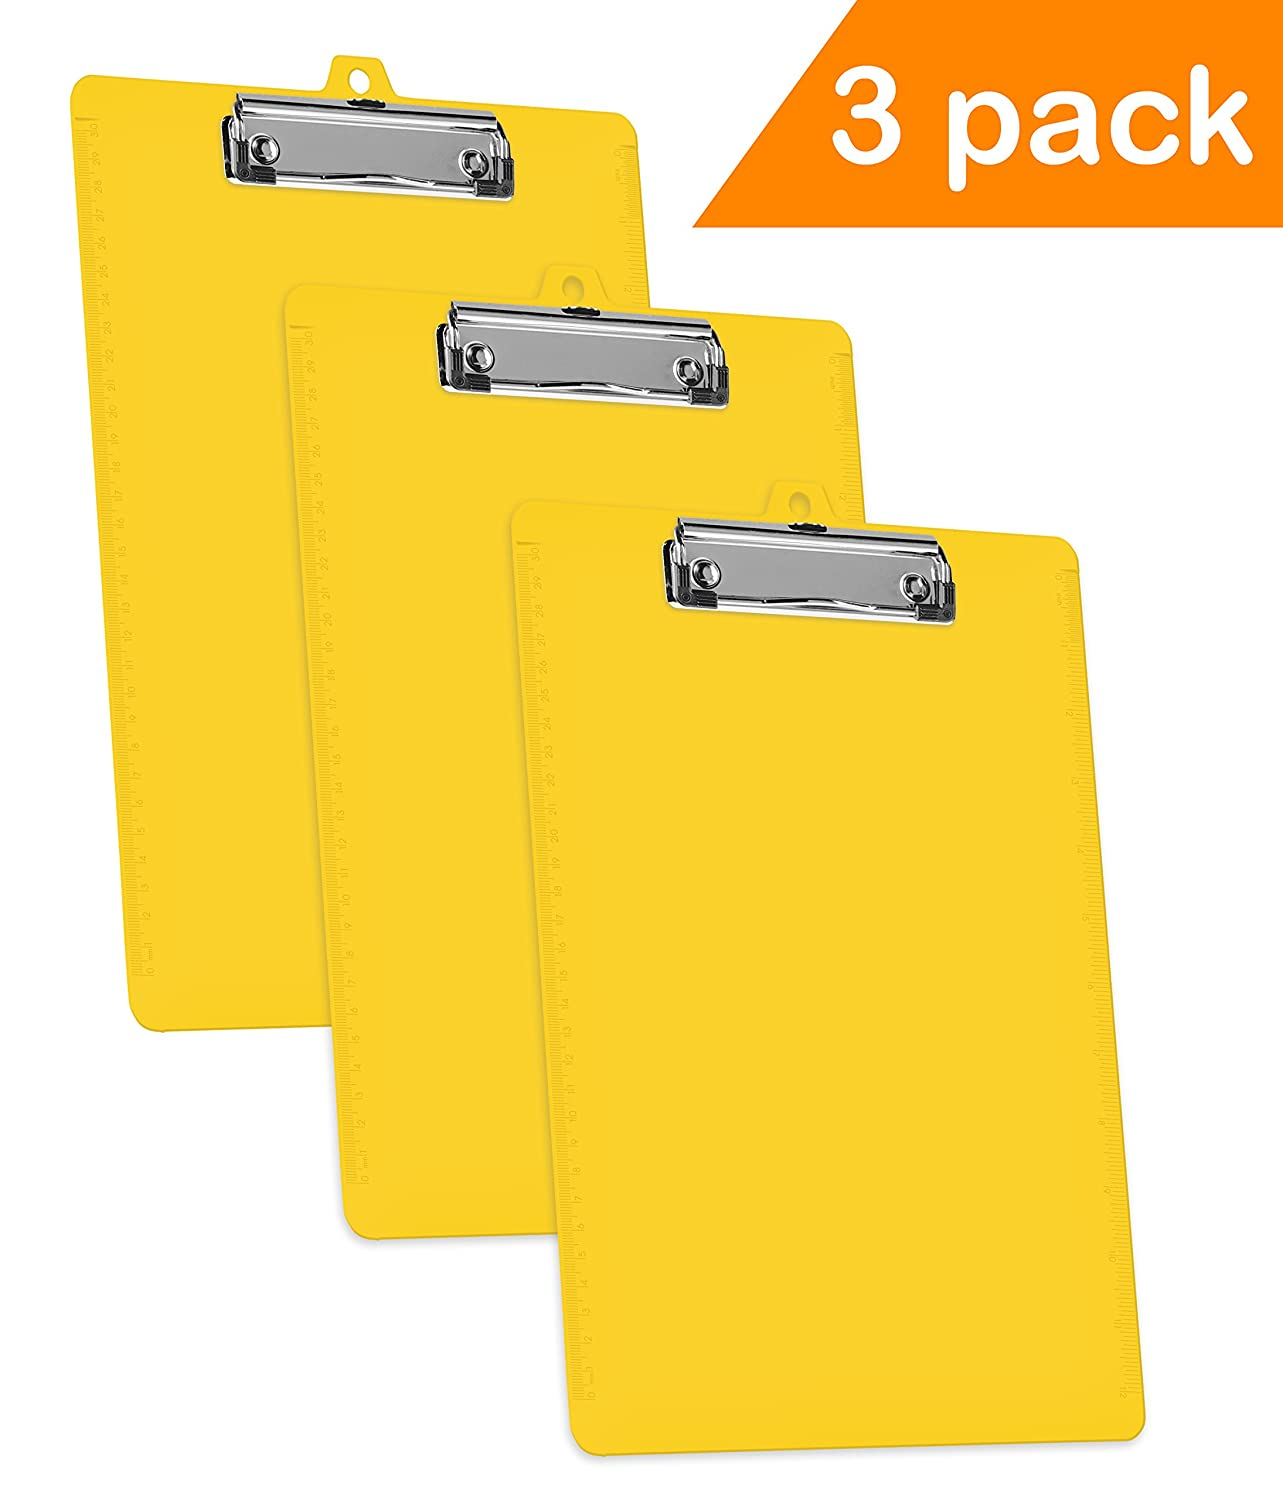 Acrimet Clipboard Low Profile Clip Letter Size A4 (Yellow Color) (3 Pack) 134.A.C